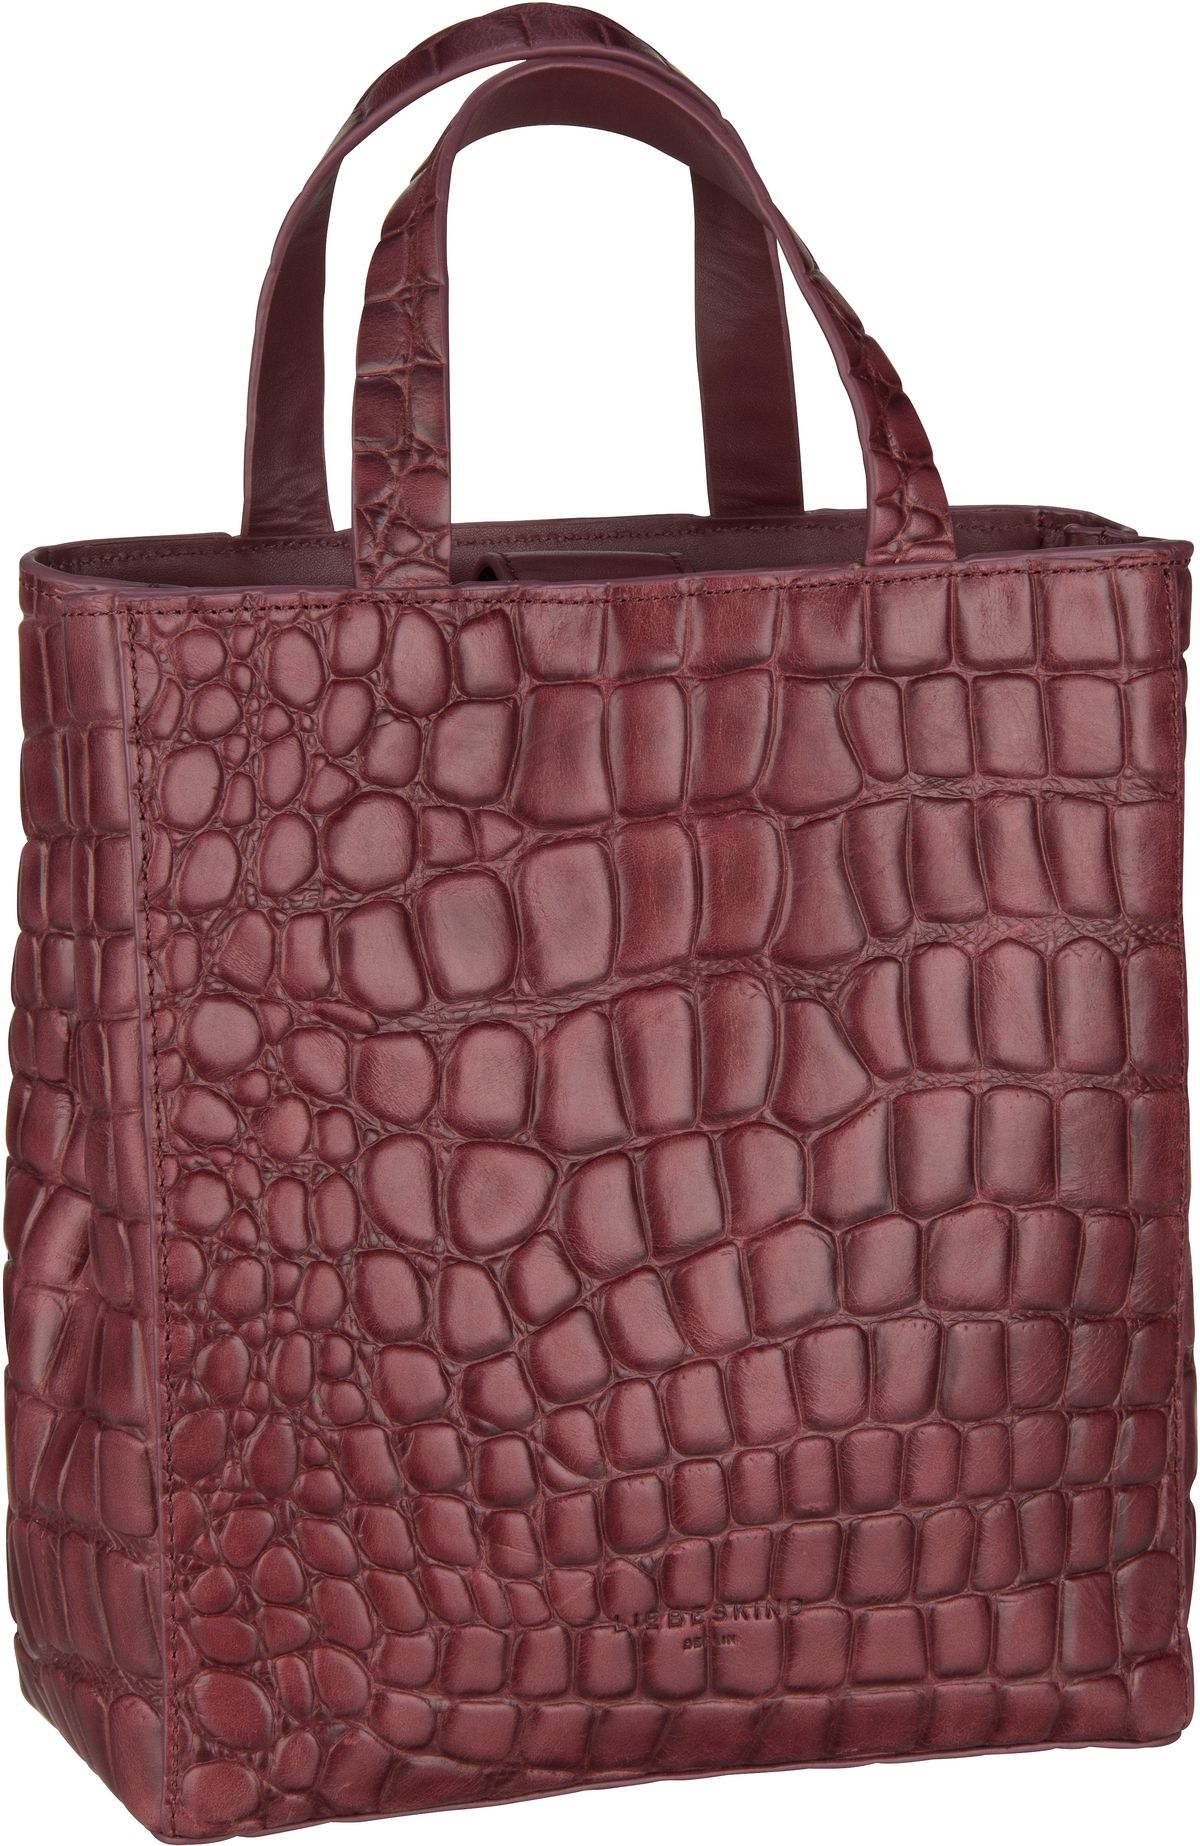 Berlin Handtasche Paper Bag Croco Tote S Red Wine